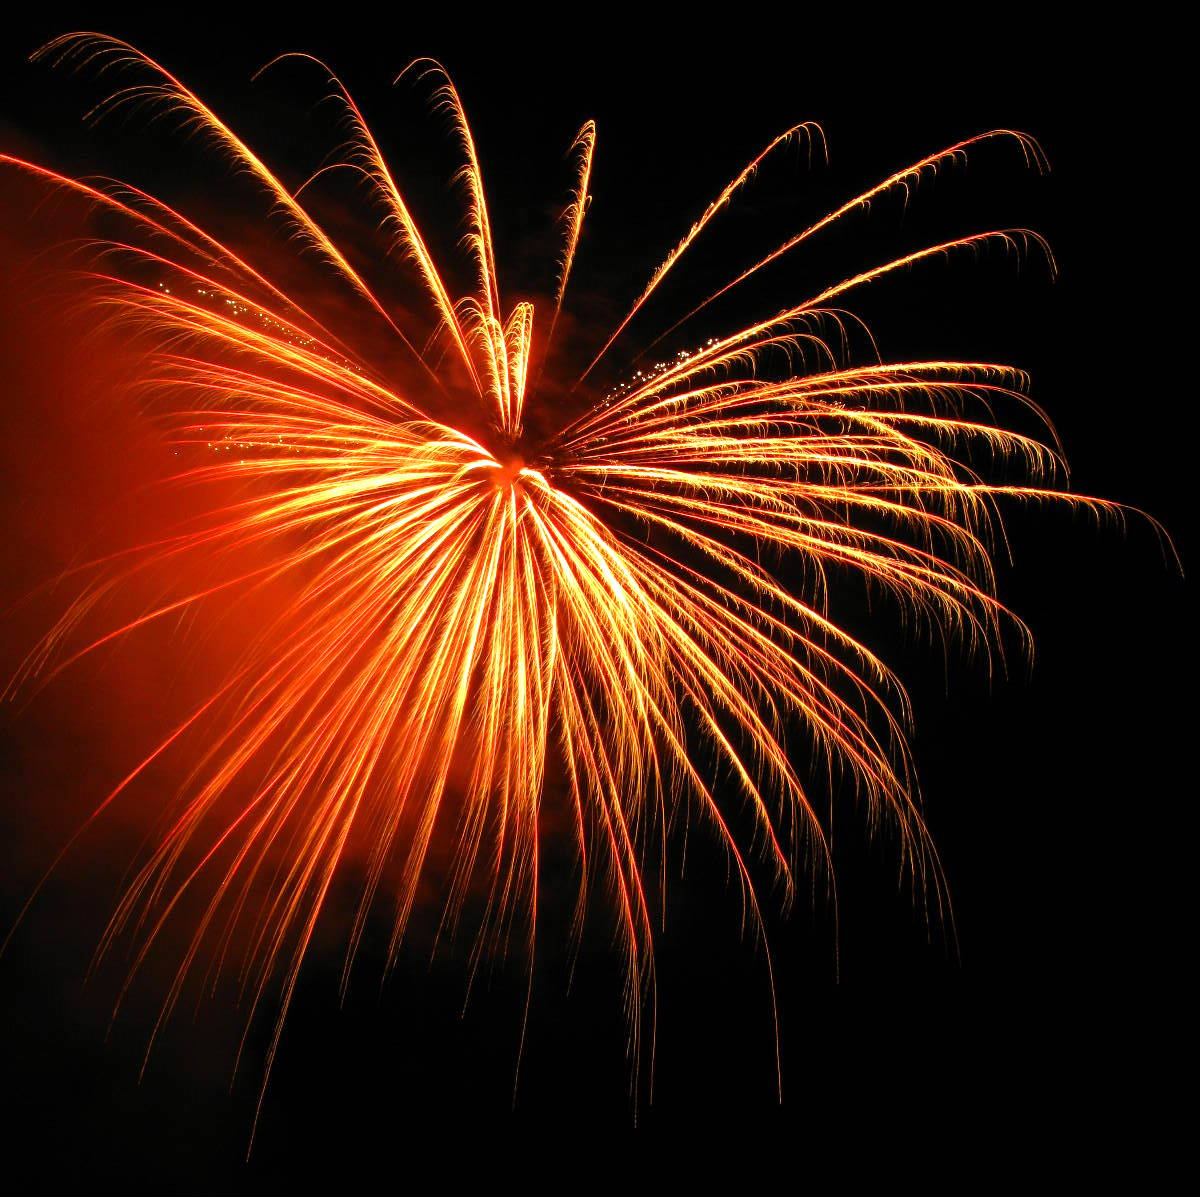 Image of celebratory firework!